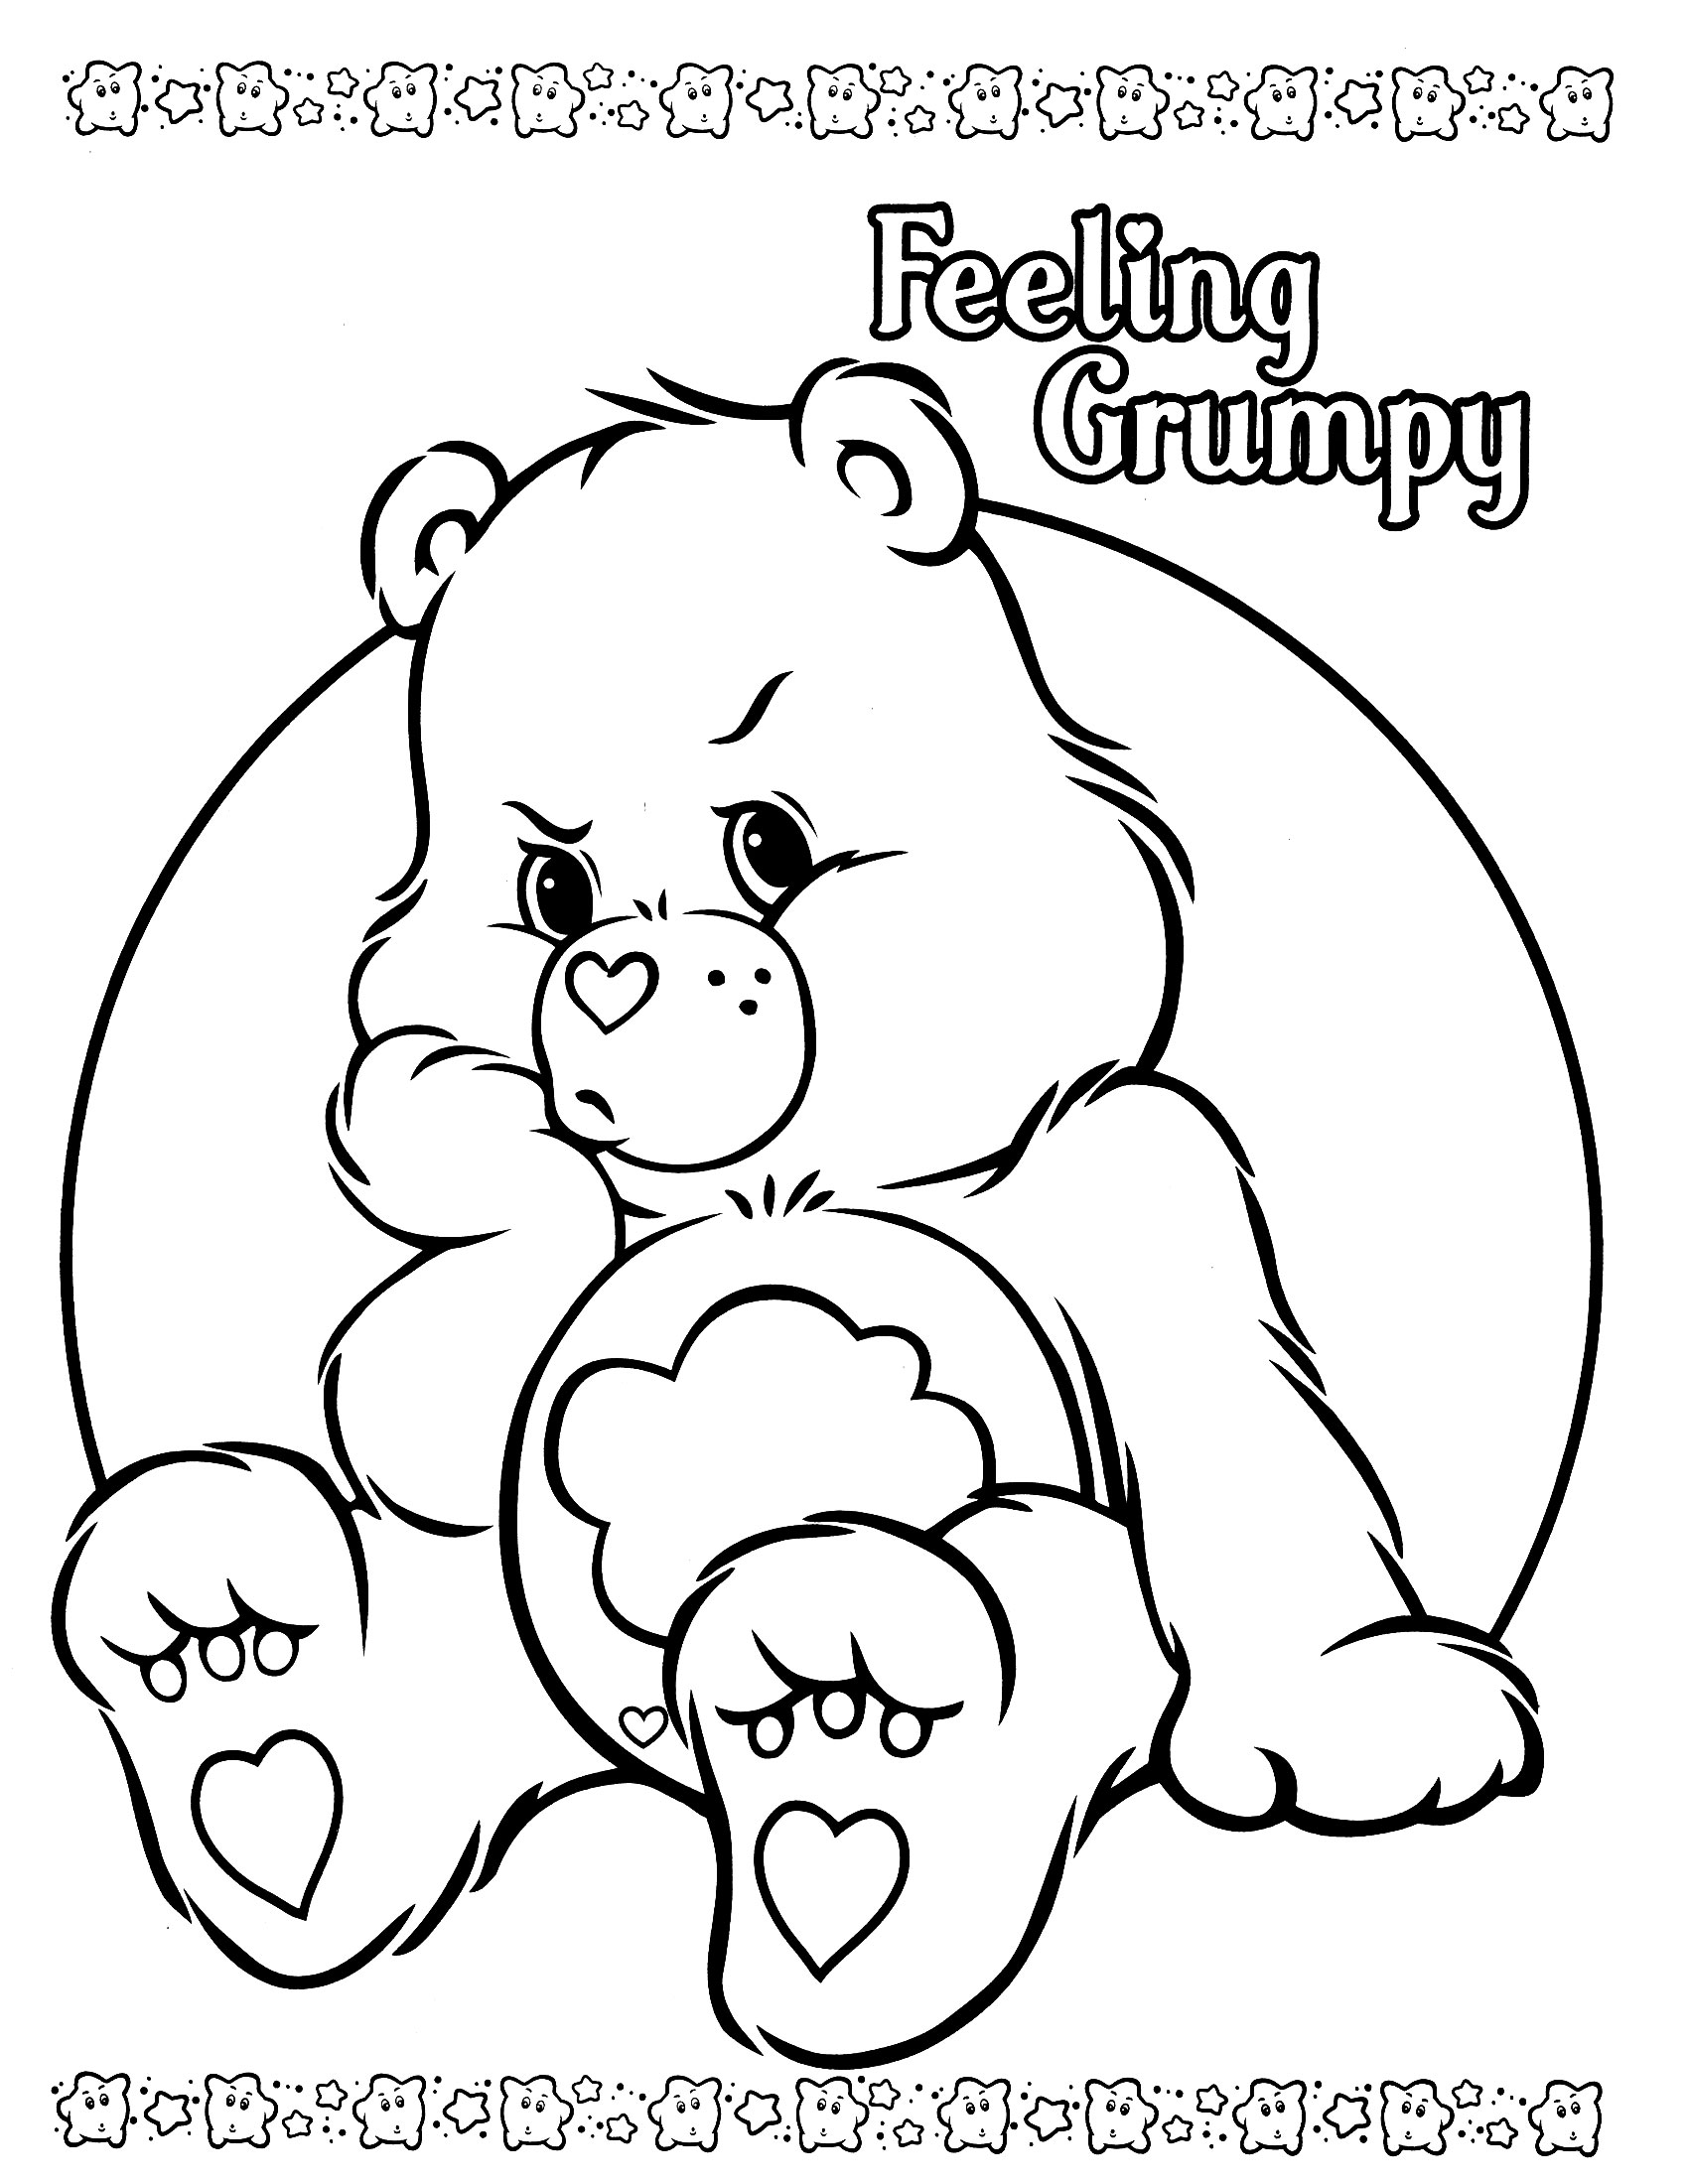 carebear coloring pages - photo#9